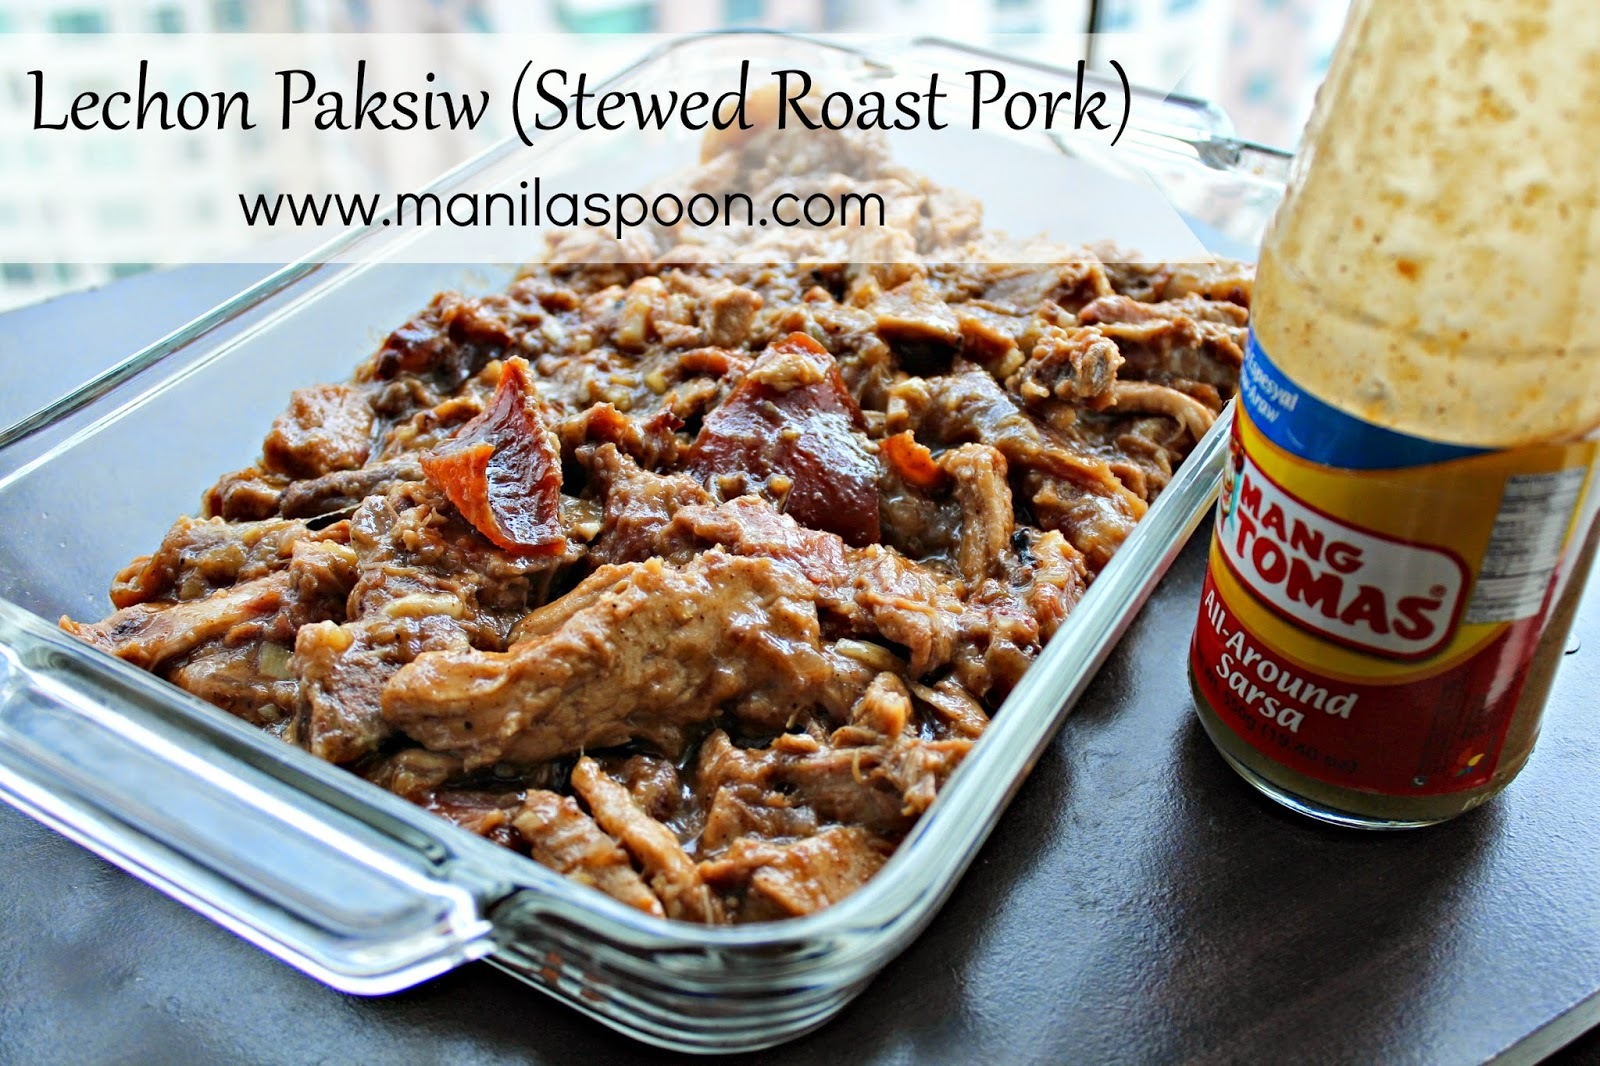 Lechon Paksiw (Stewed Roast Pork)